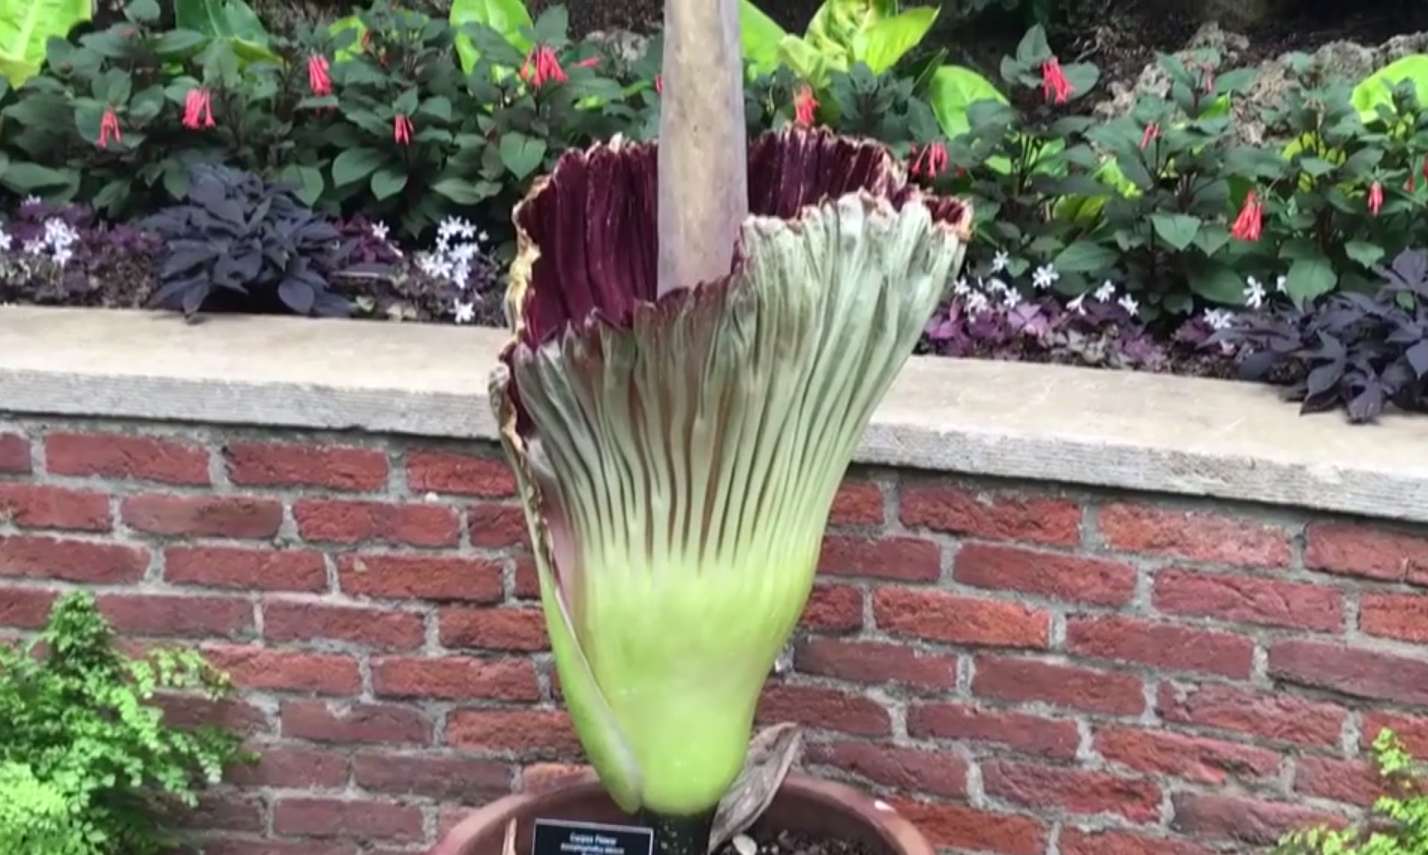 Not much time left to see foul smelling Corpse Flower bloom RabbleVID